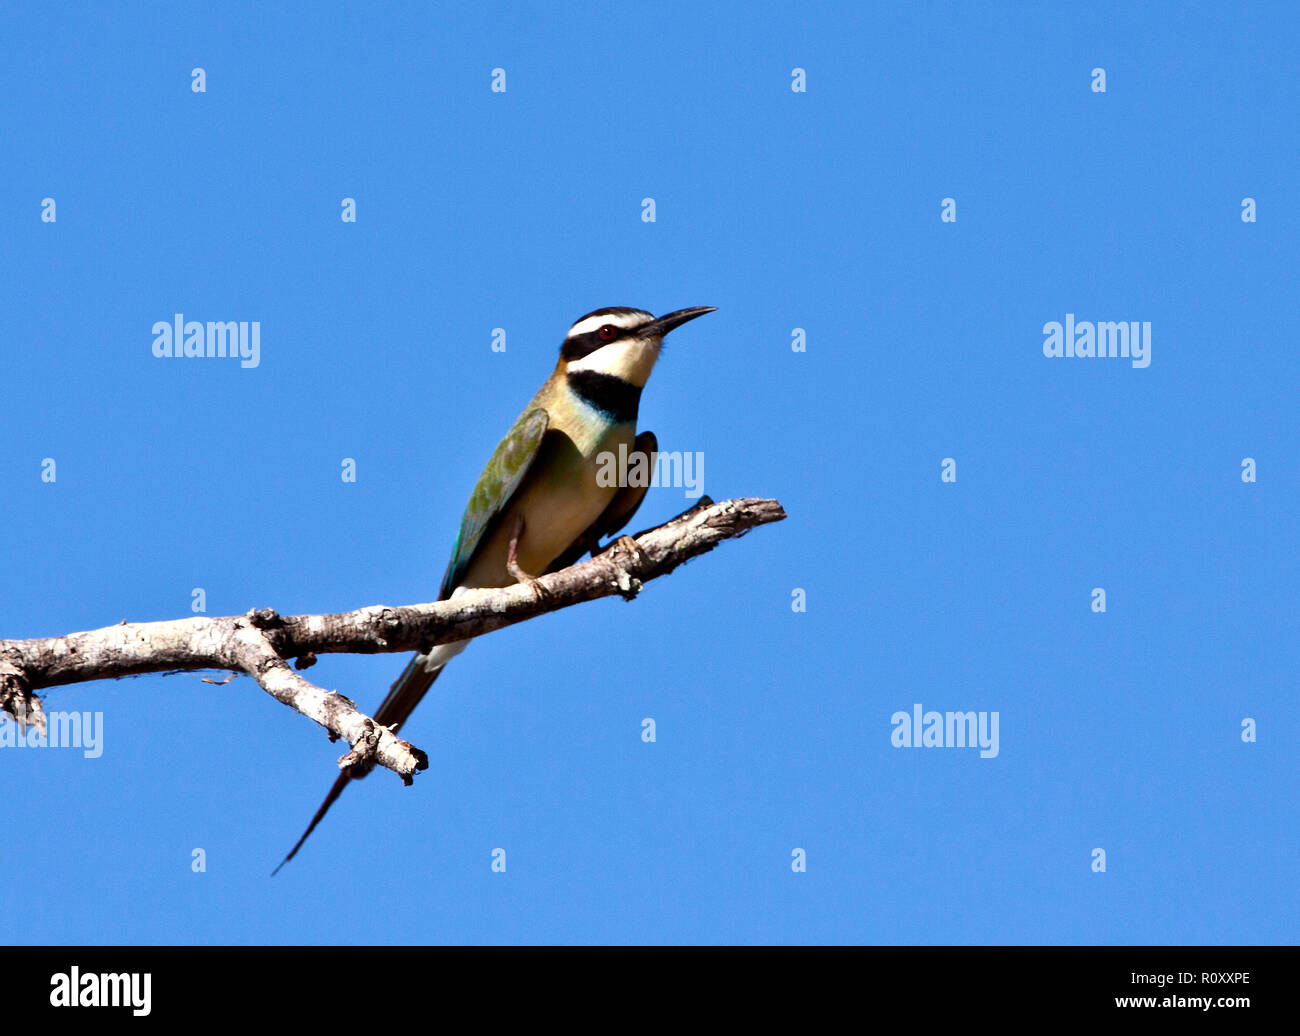 The White-throated Bee-Eater is an inter-African migrant that follows the rain season moving between it's breeding areas in the Sahel regions and East - Stock Image